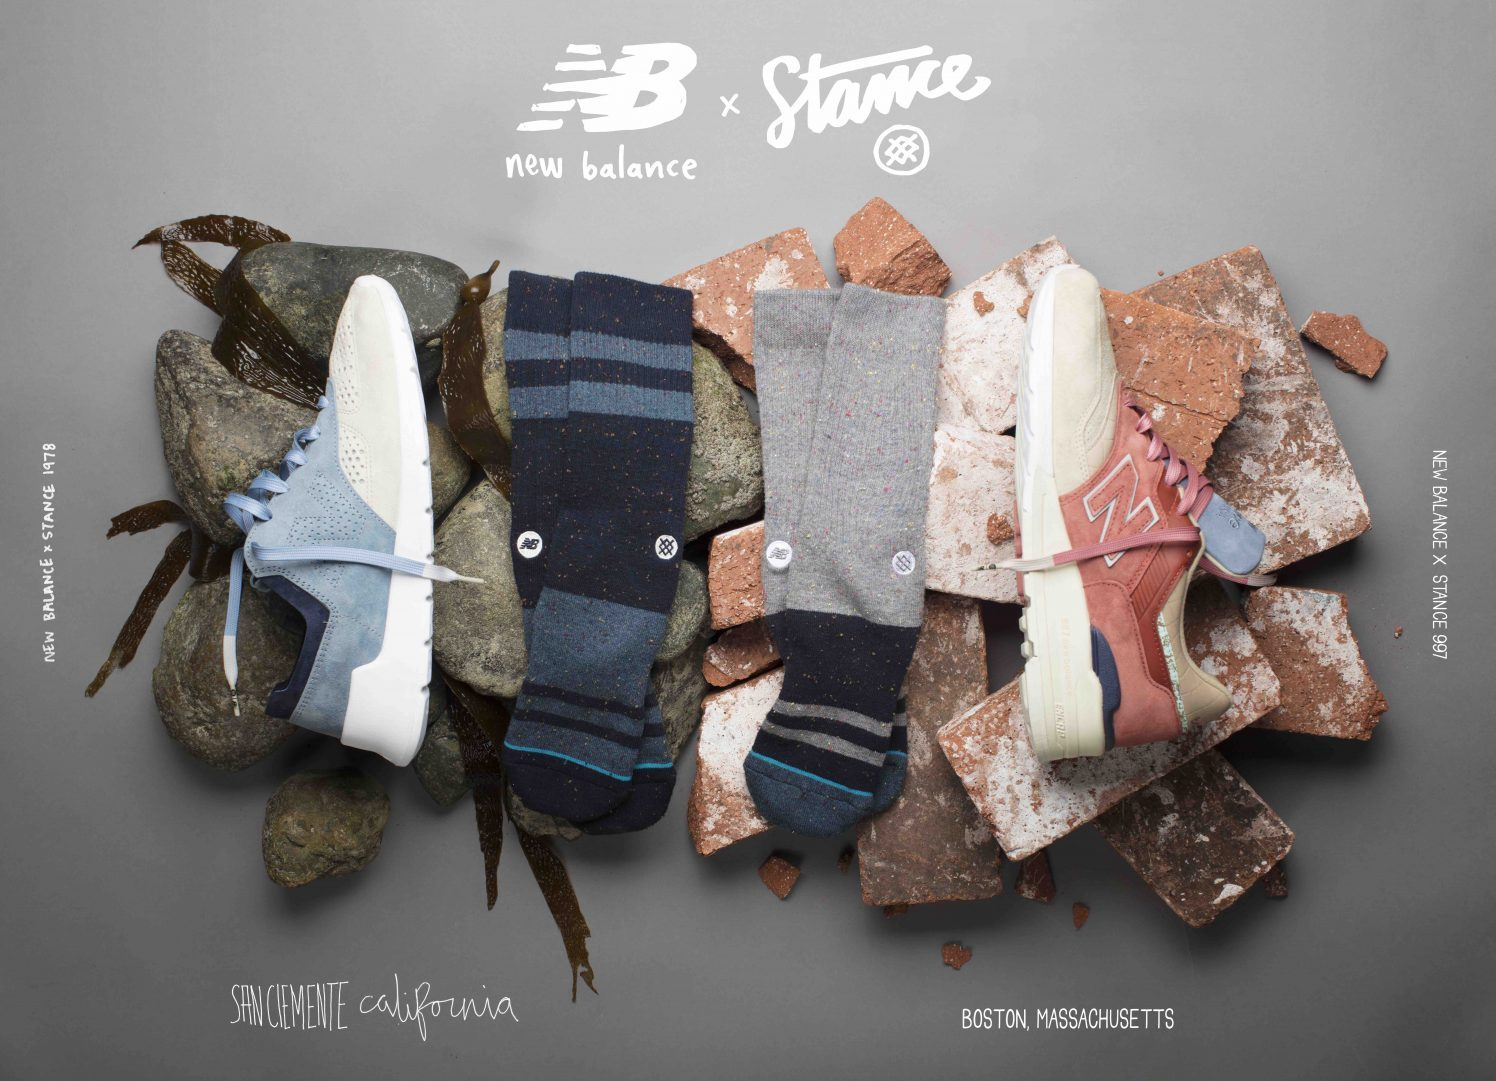 New Balance STANCE socks lappoms lifestyle blog collab capsule collection